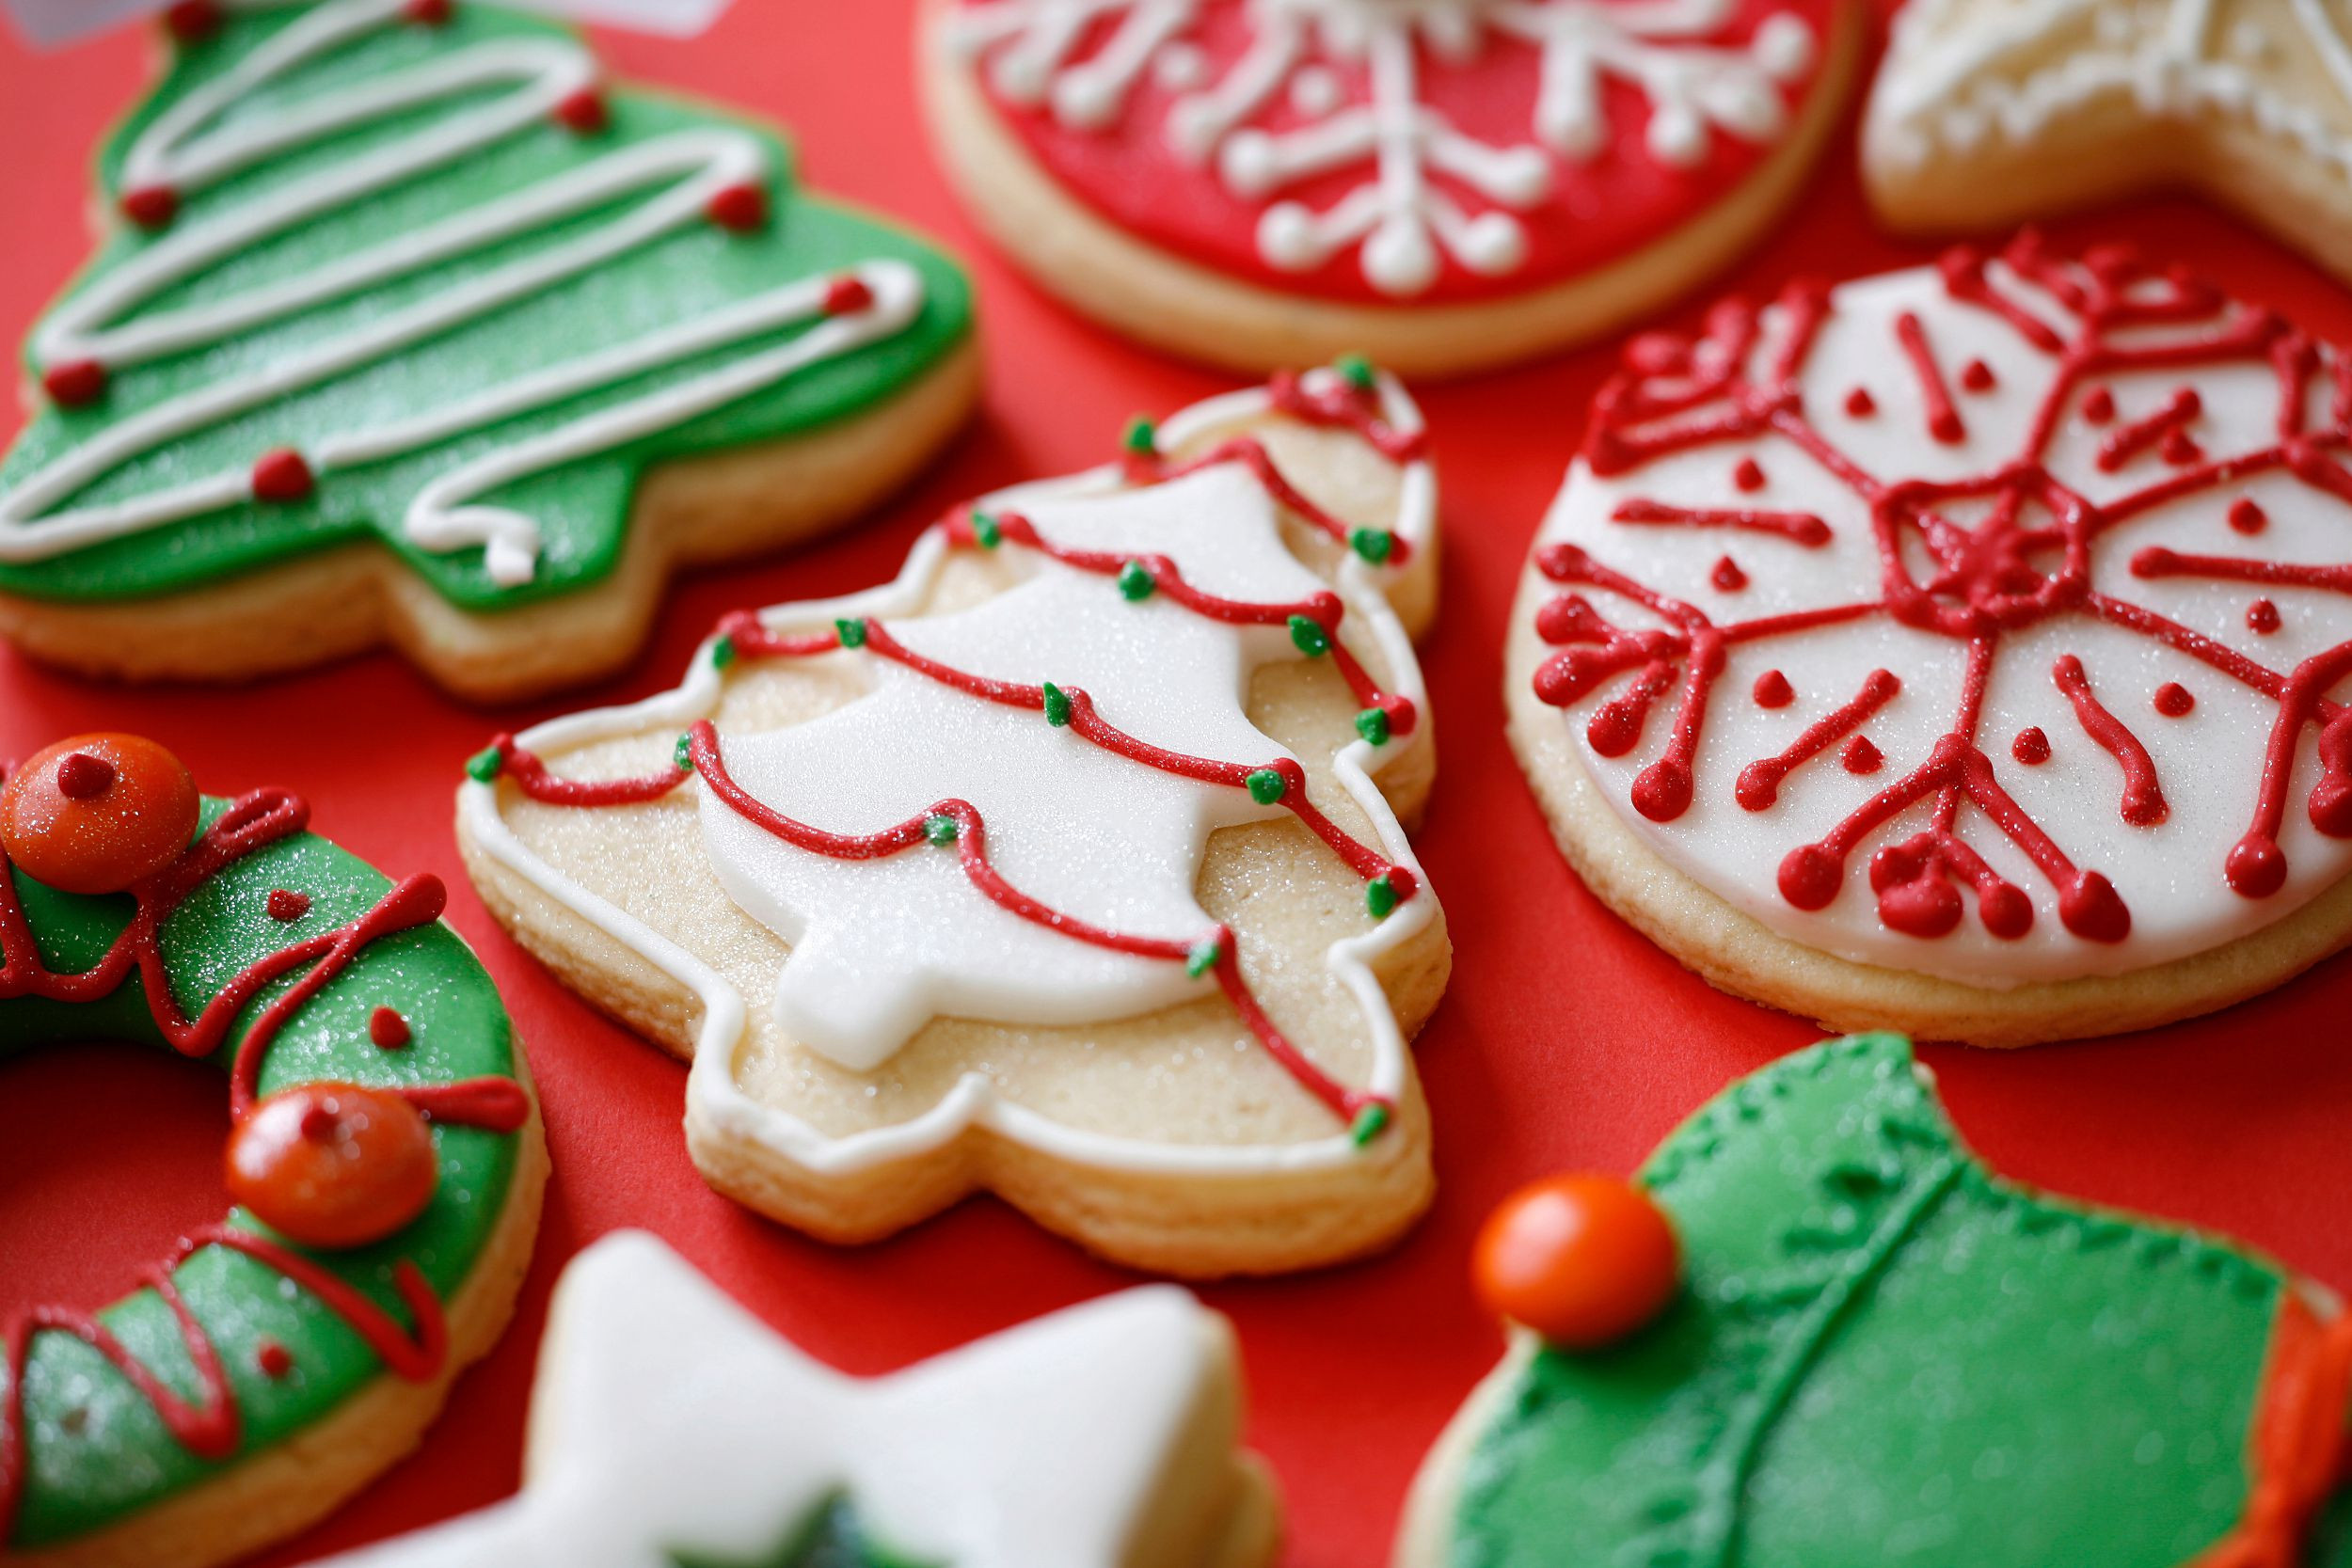 Decorating Christmas Cookies With Royal Icing  Royal Icing Recipe for Decorating Cookies